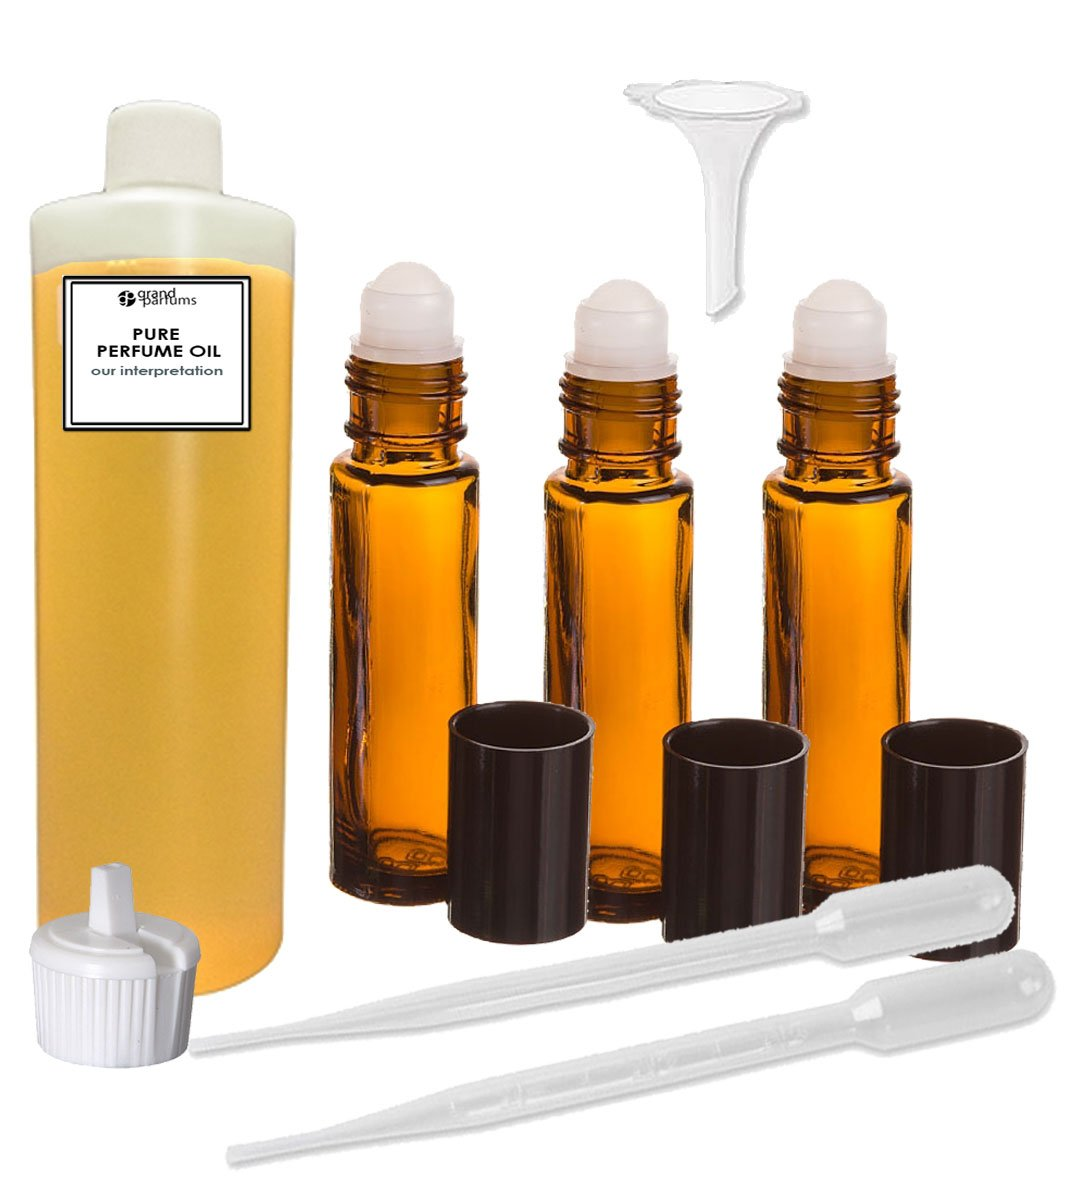 Grand Parfums Perfume Oil Set - Golden Sand Type, Our Interpretation, Highest Quality Uncut Perfume Oil (2 Oz) by Grand Parfums